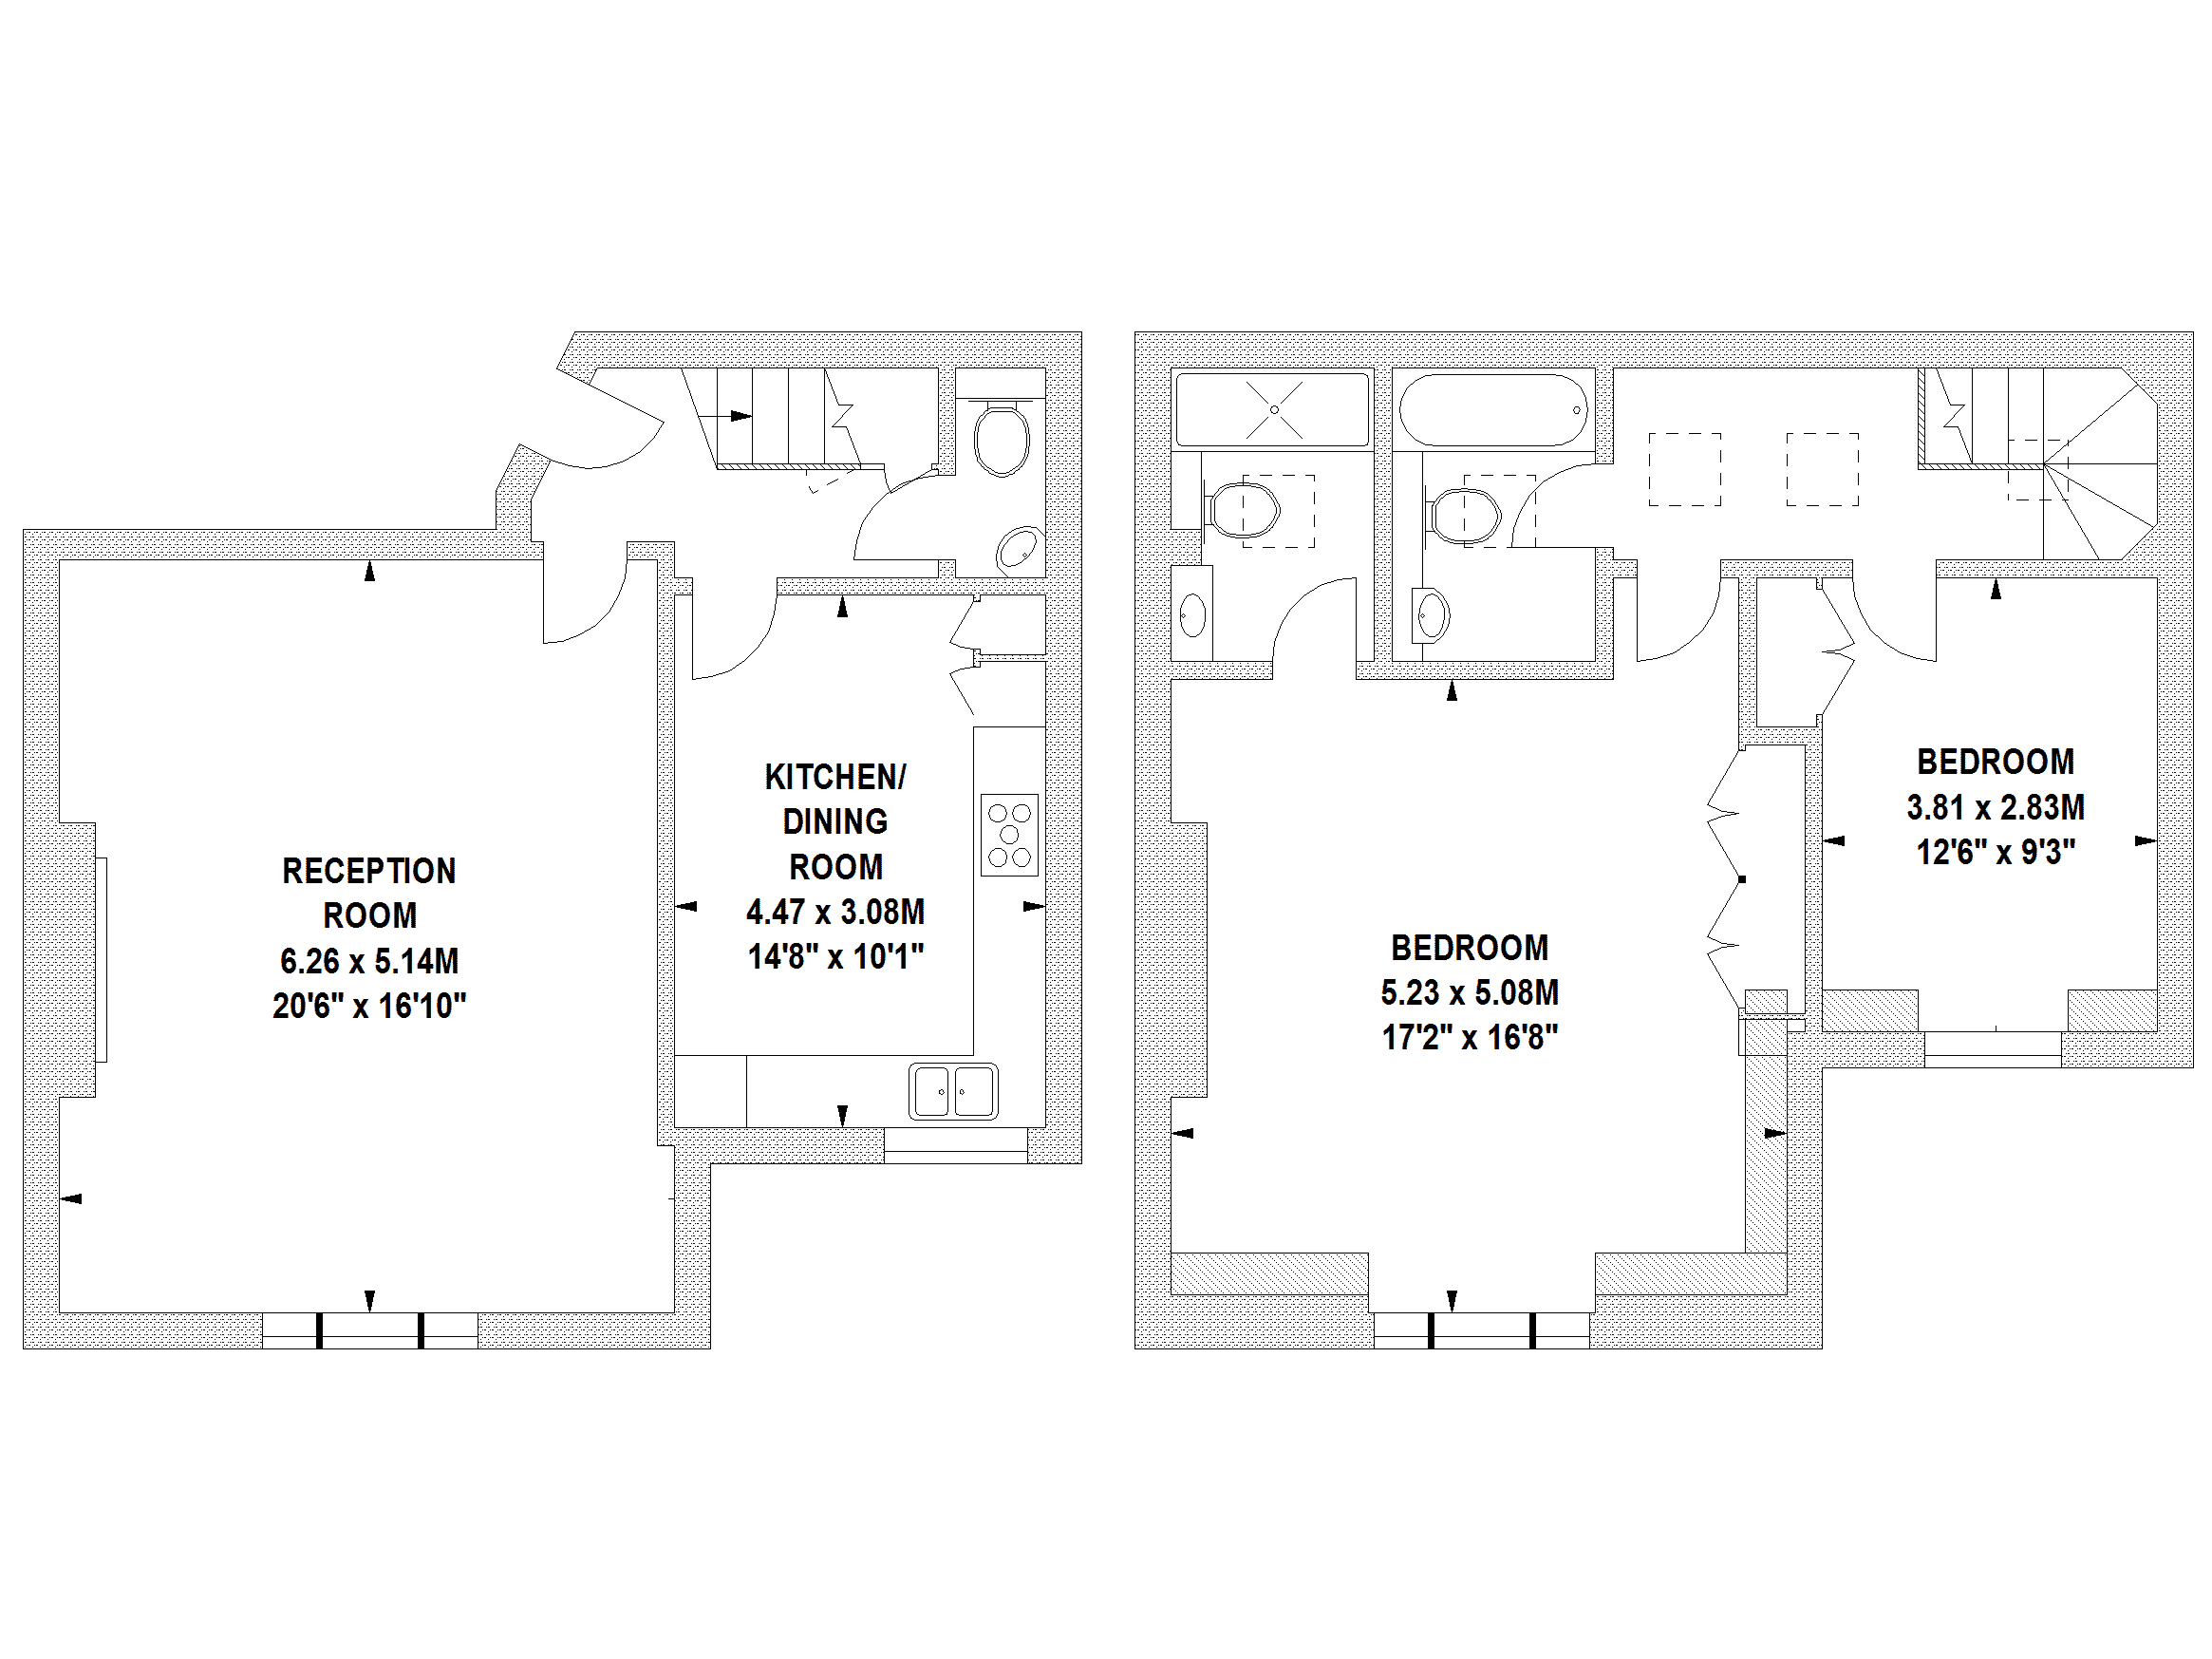 Floor Plans by Harpr Surveyors - This is an example of our wall shaded floor plans